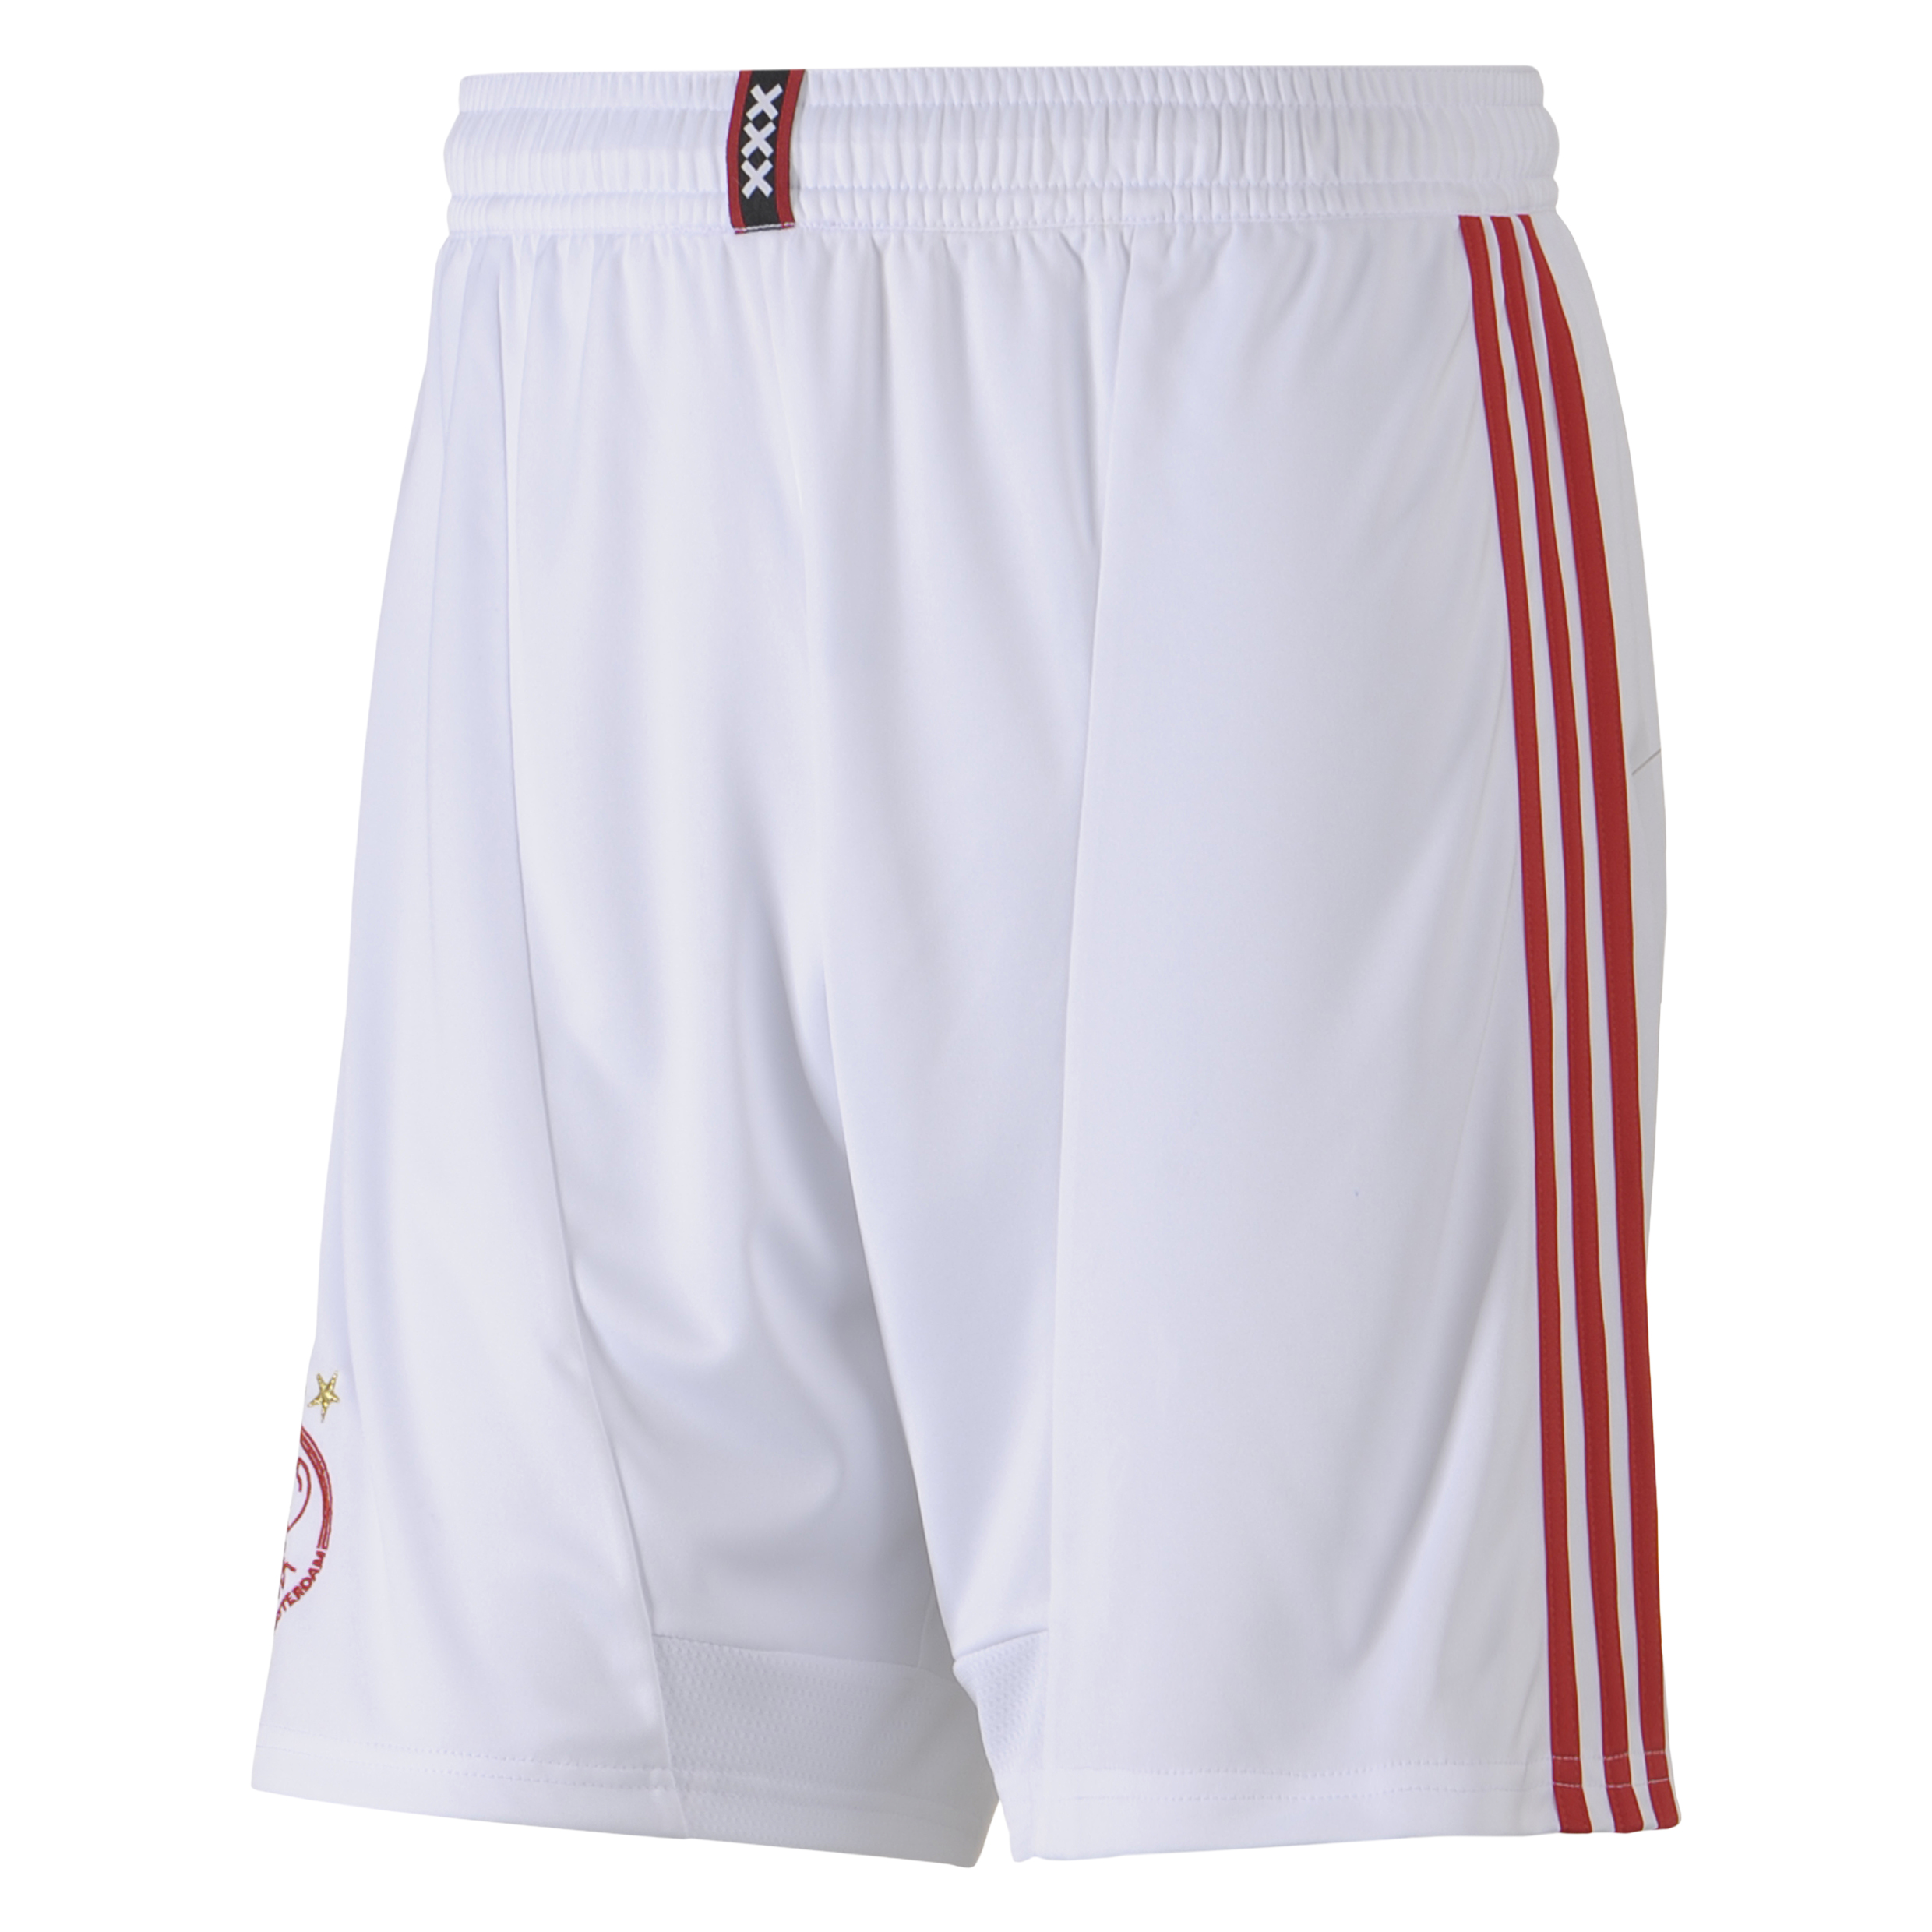 Ajax Home Short 2012/13 - Kids